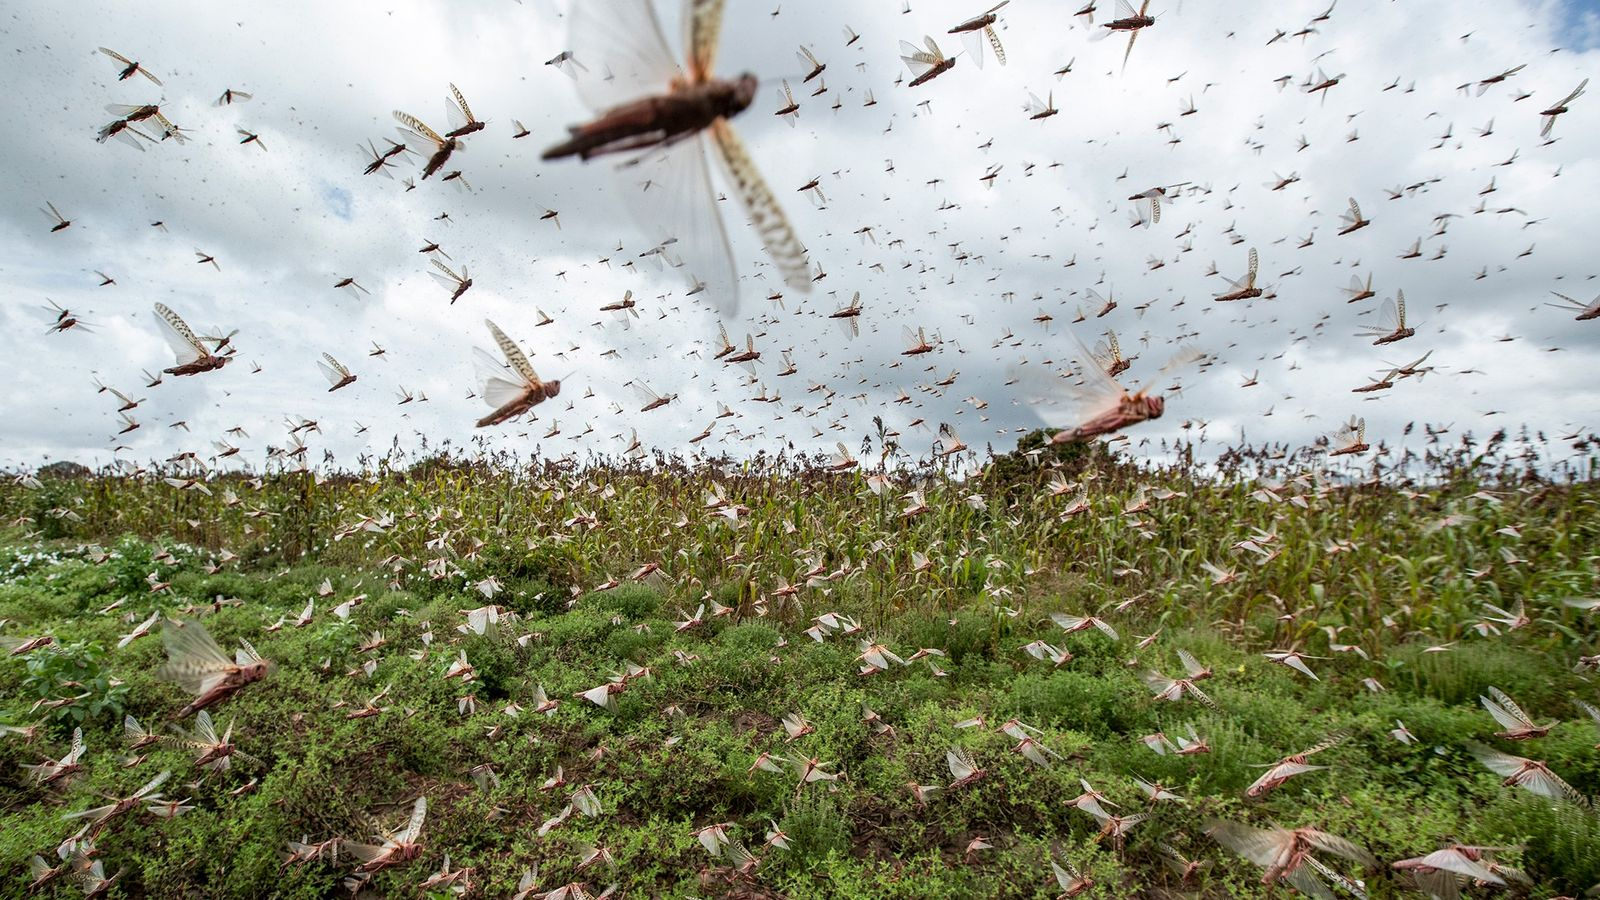 A plague of locusts has descended on East Africa. Climate change ...